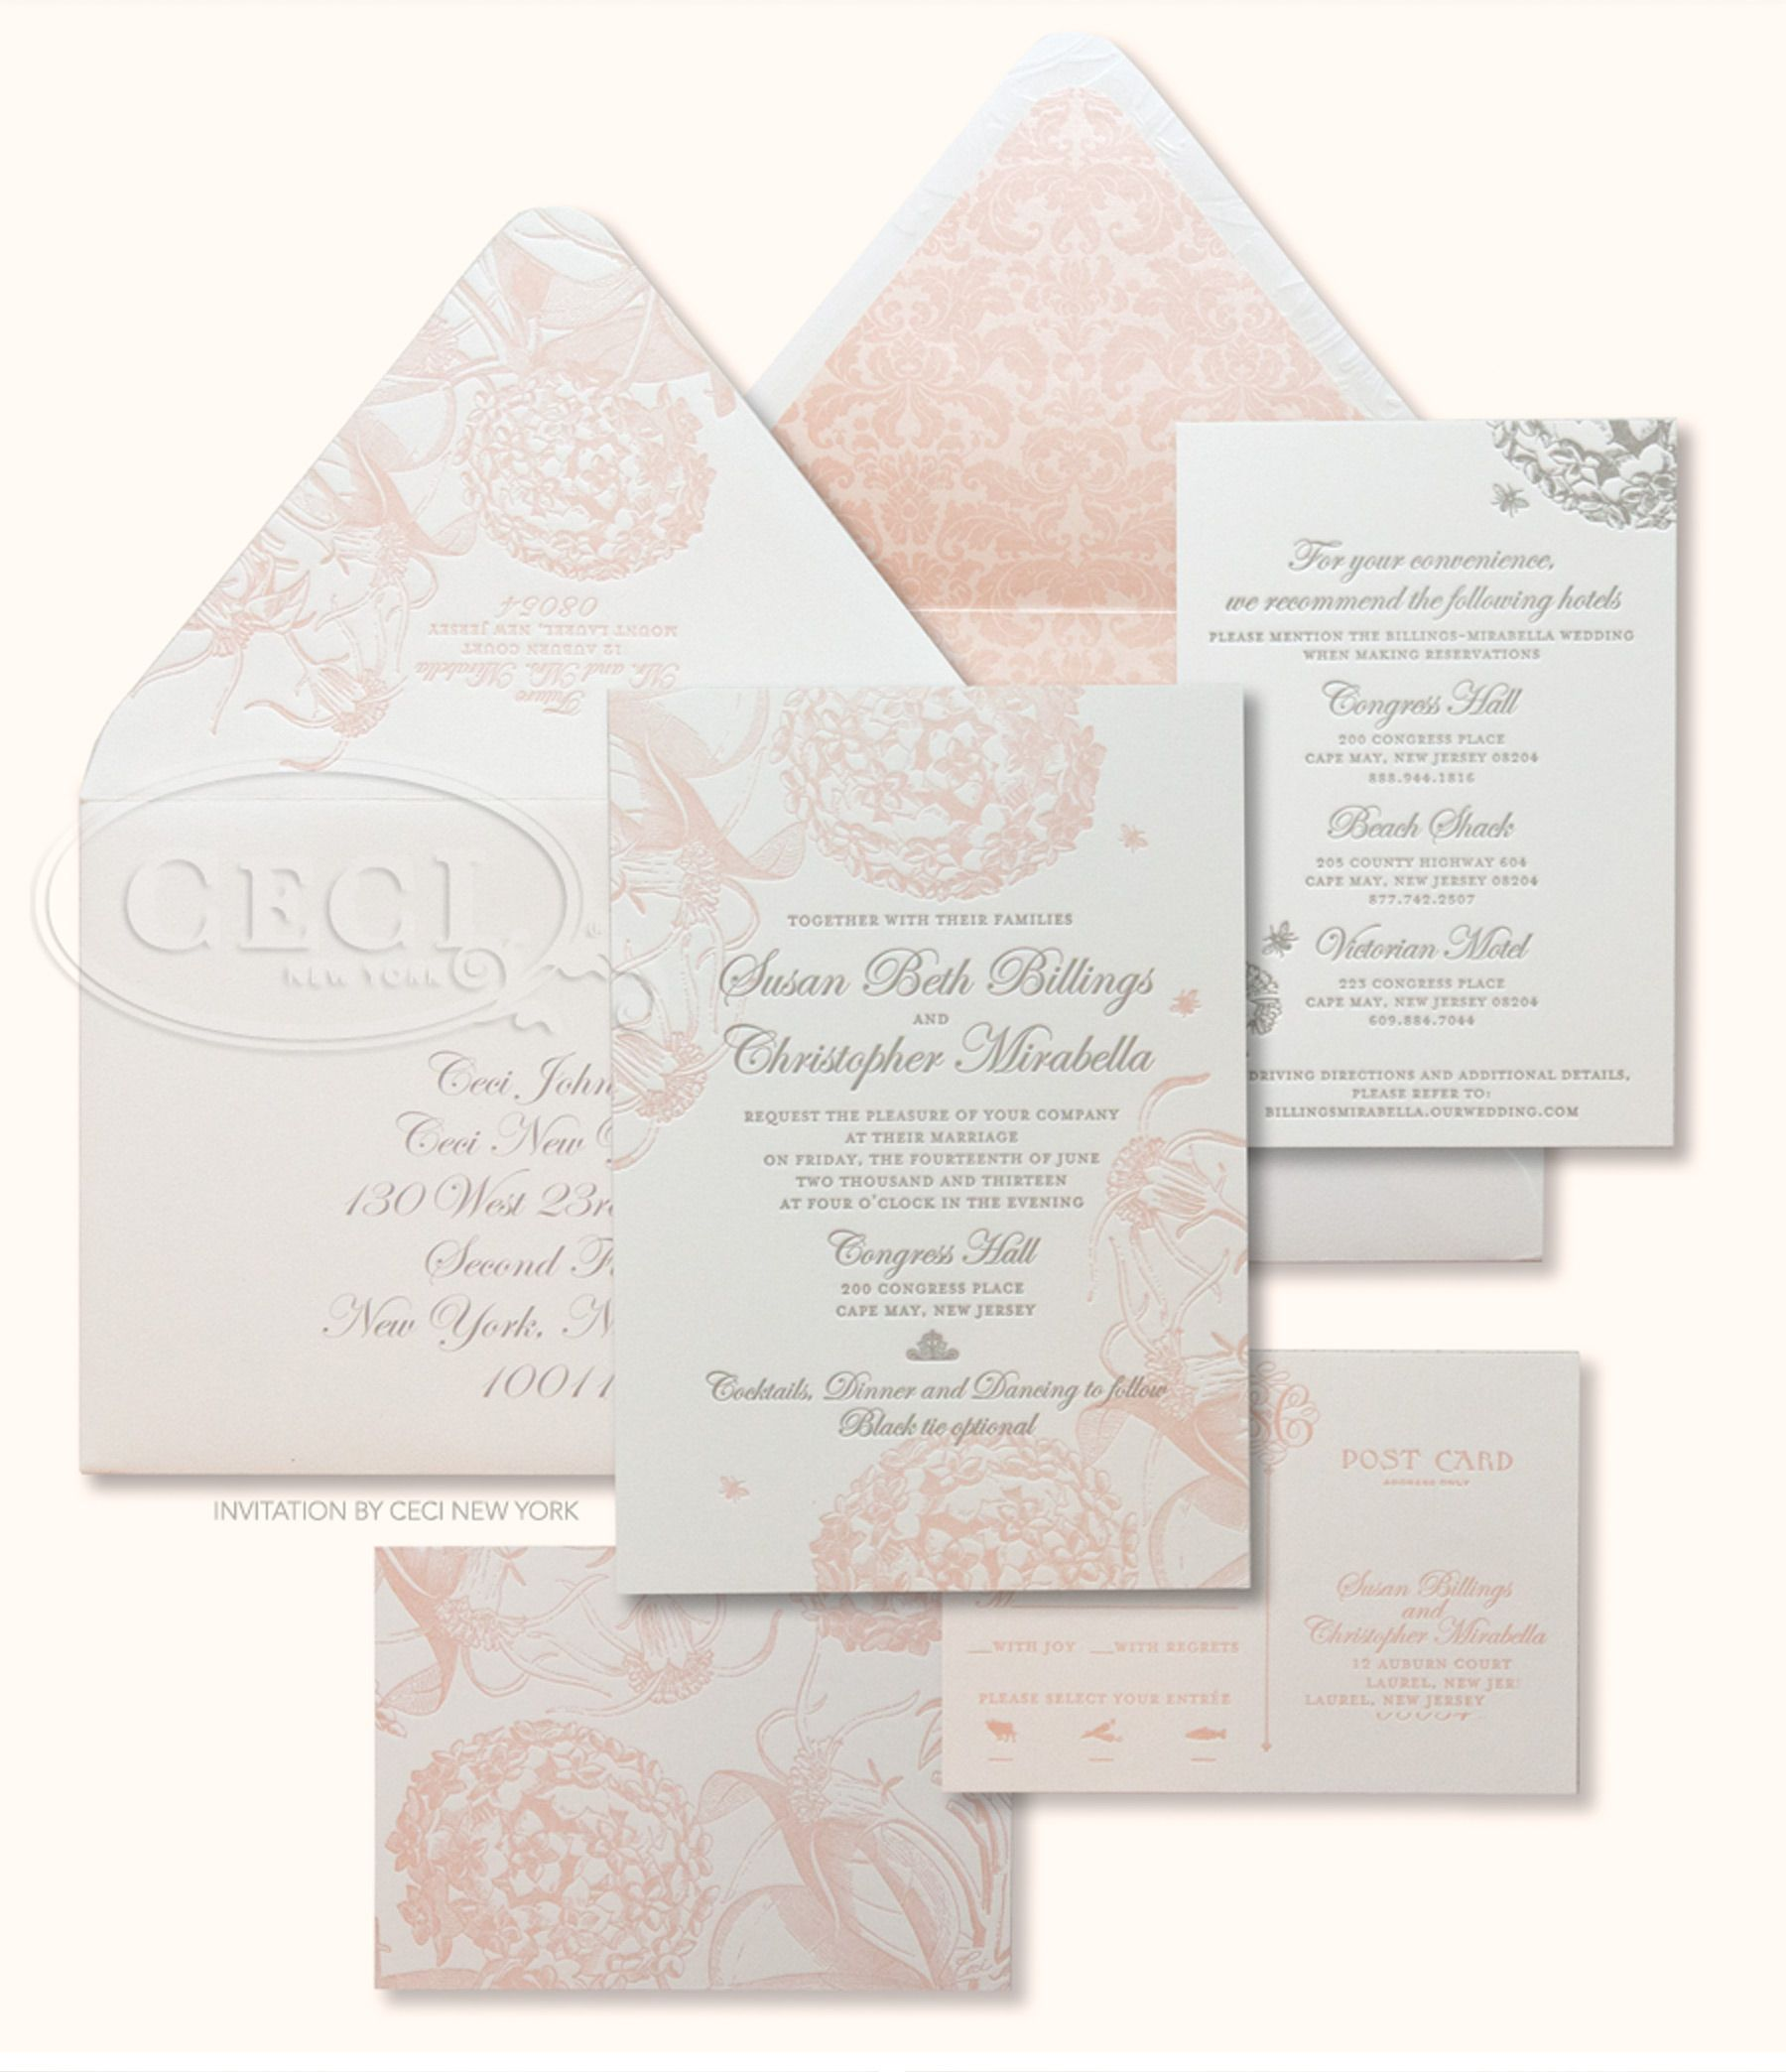 Luxury Wedding Invitations Online: Pink_pewter_wedding_letterpress_cape_may_congress_hall_new